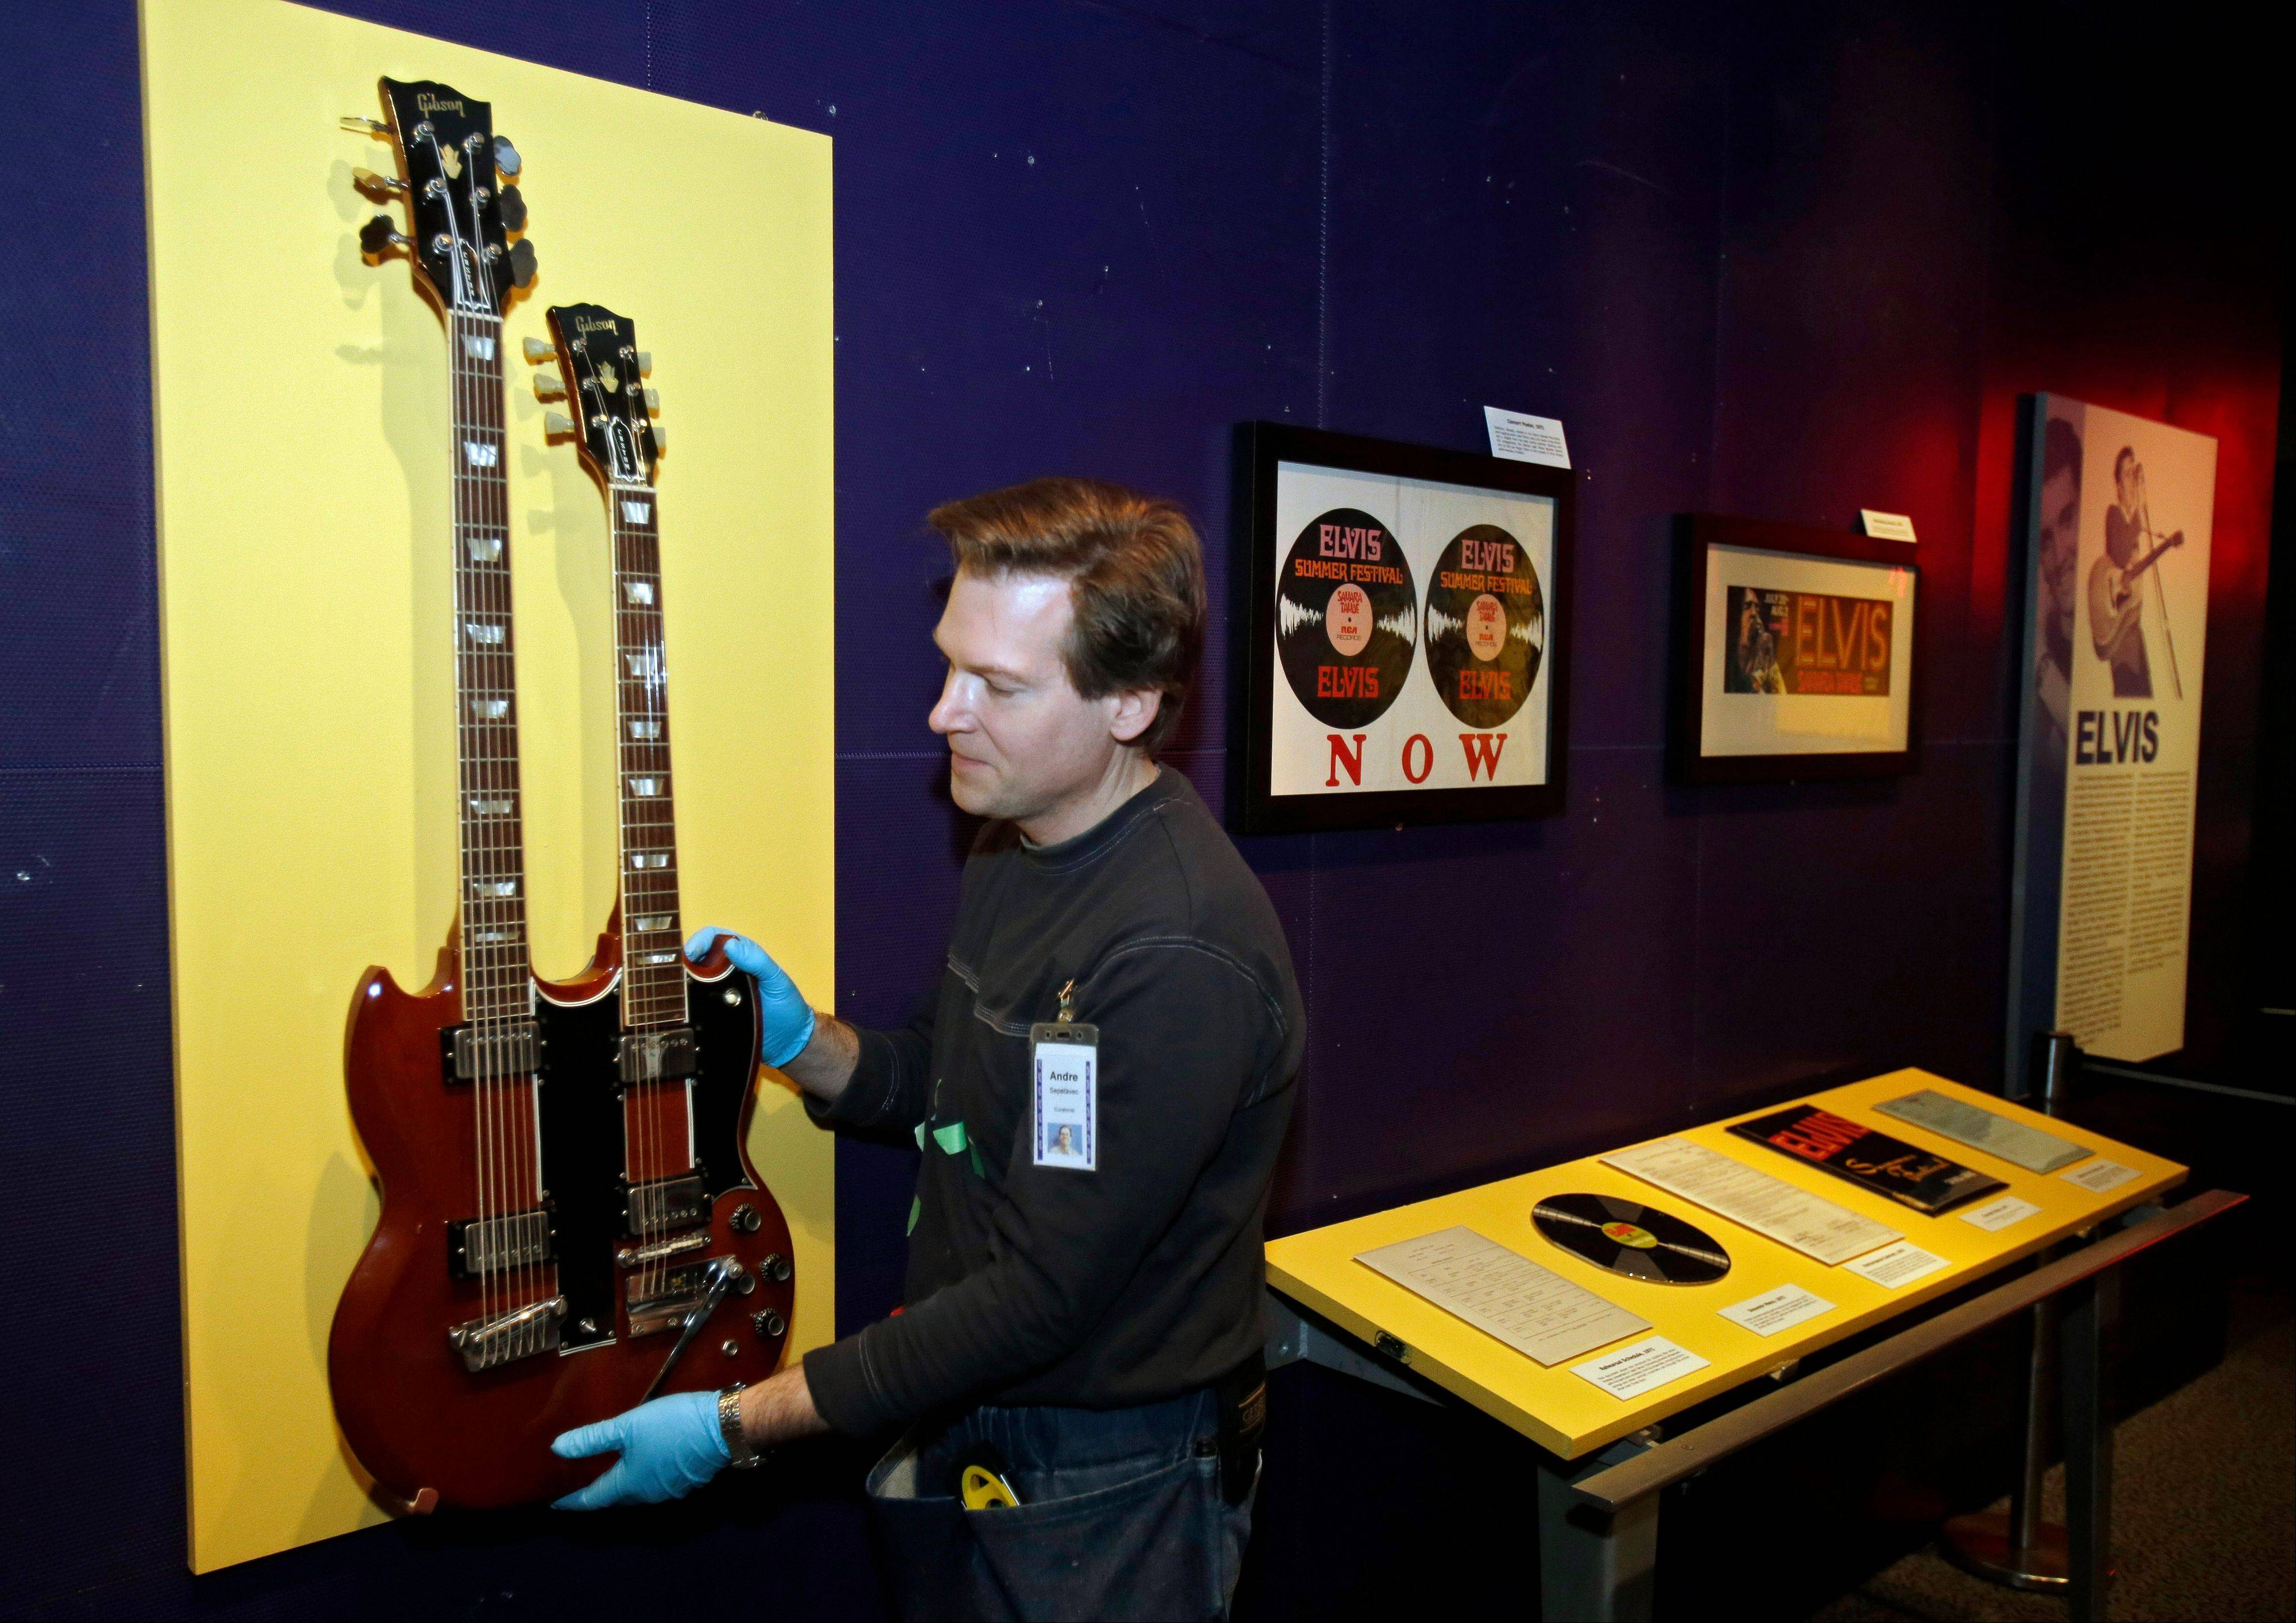 Andre Sepetavec installs a double-necked guitar in the Elvis exhibit at the Rock and Roll Hall of Fame and Museum in Cleveland.